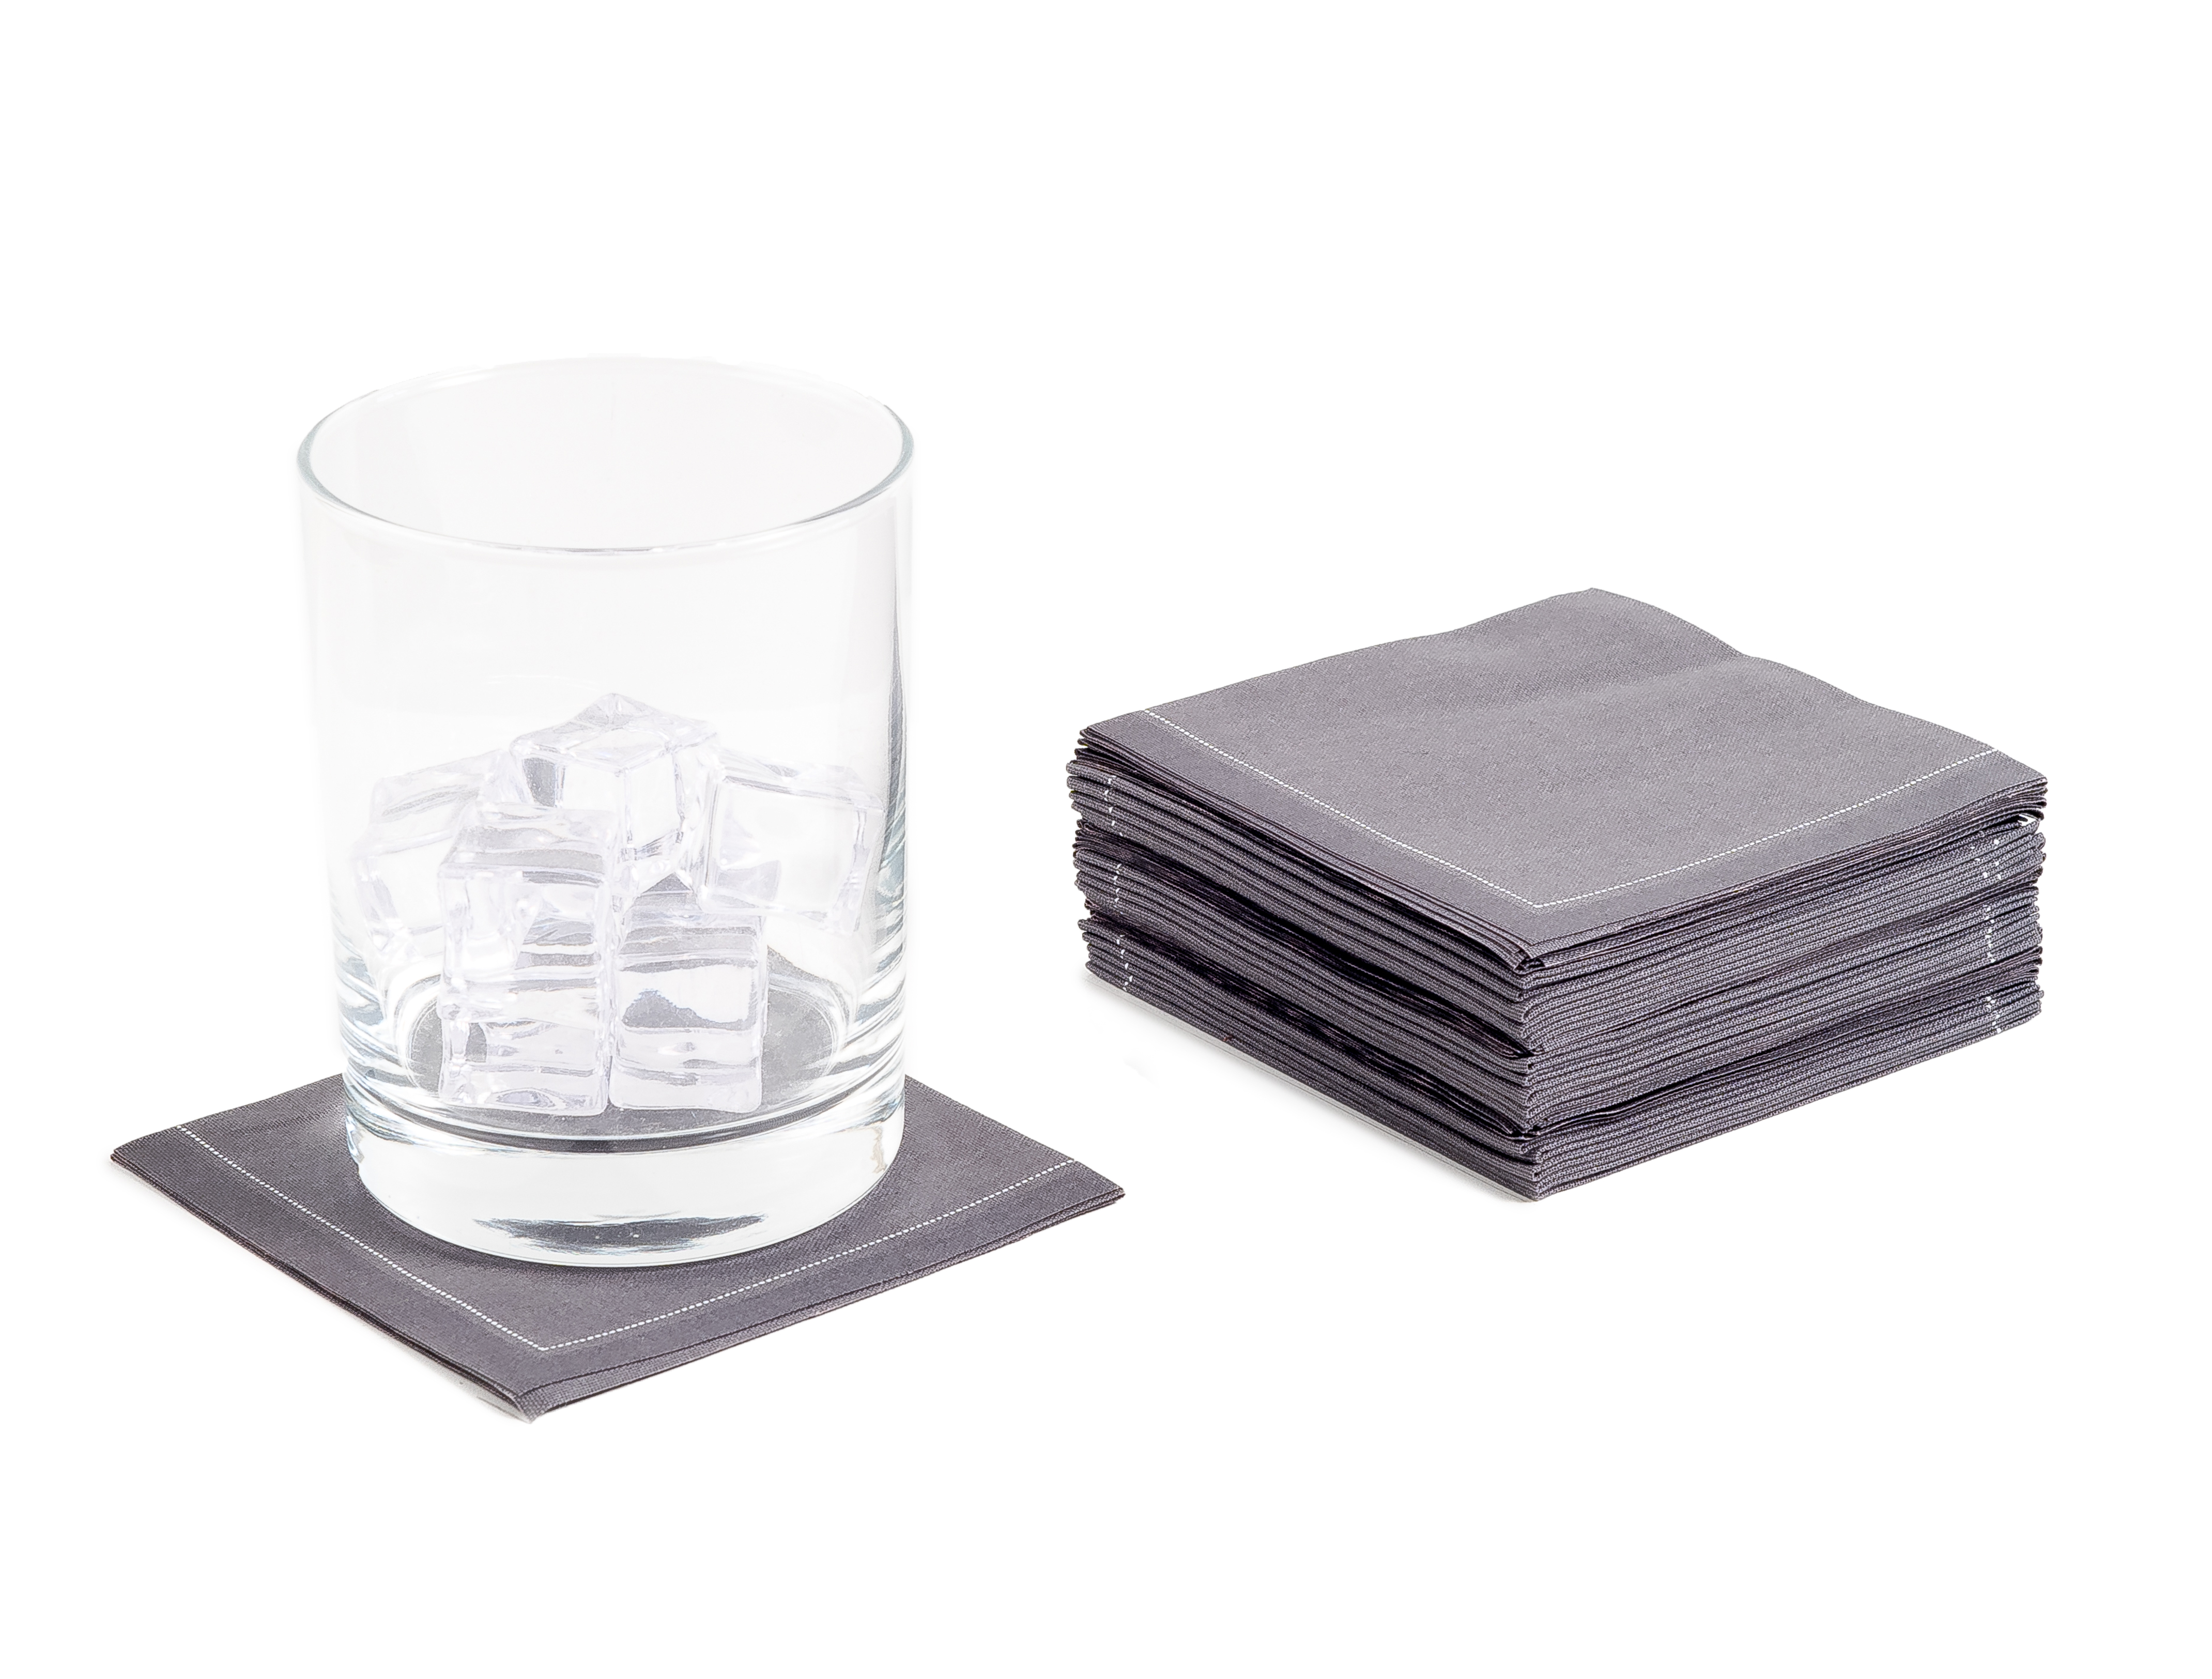 "Anthracite Grey Cotton 1/4 Fold Cocktail - 8"" x 8"" (folded 4"" x 4"") - 30 units"